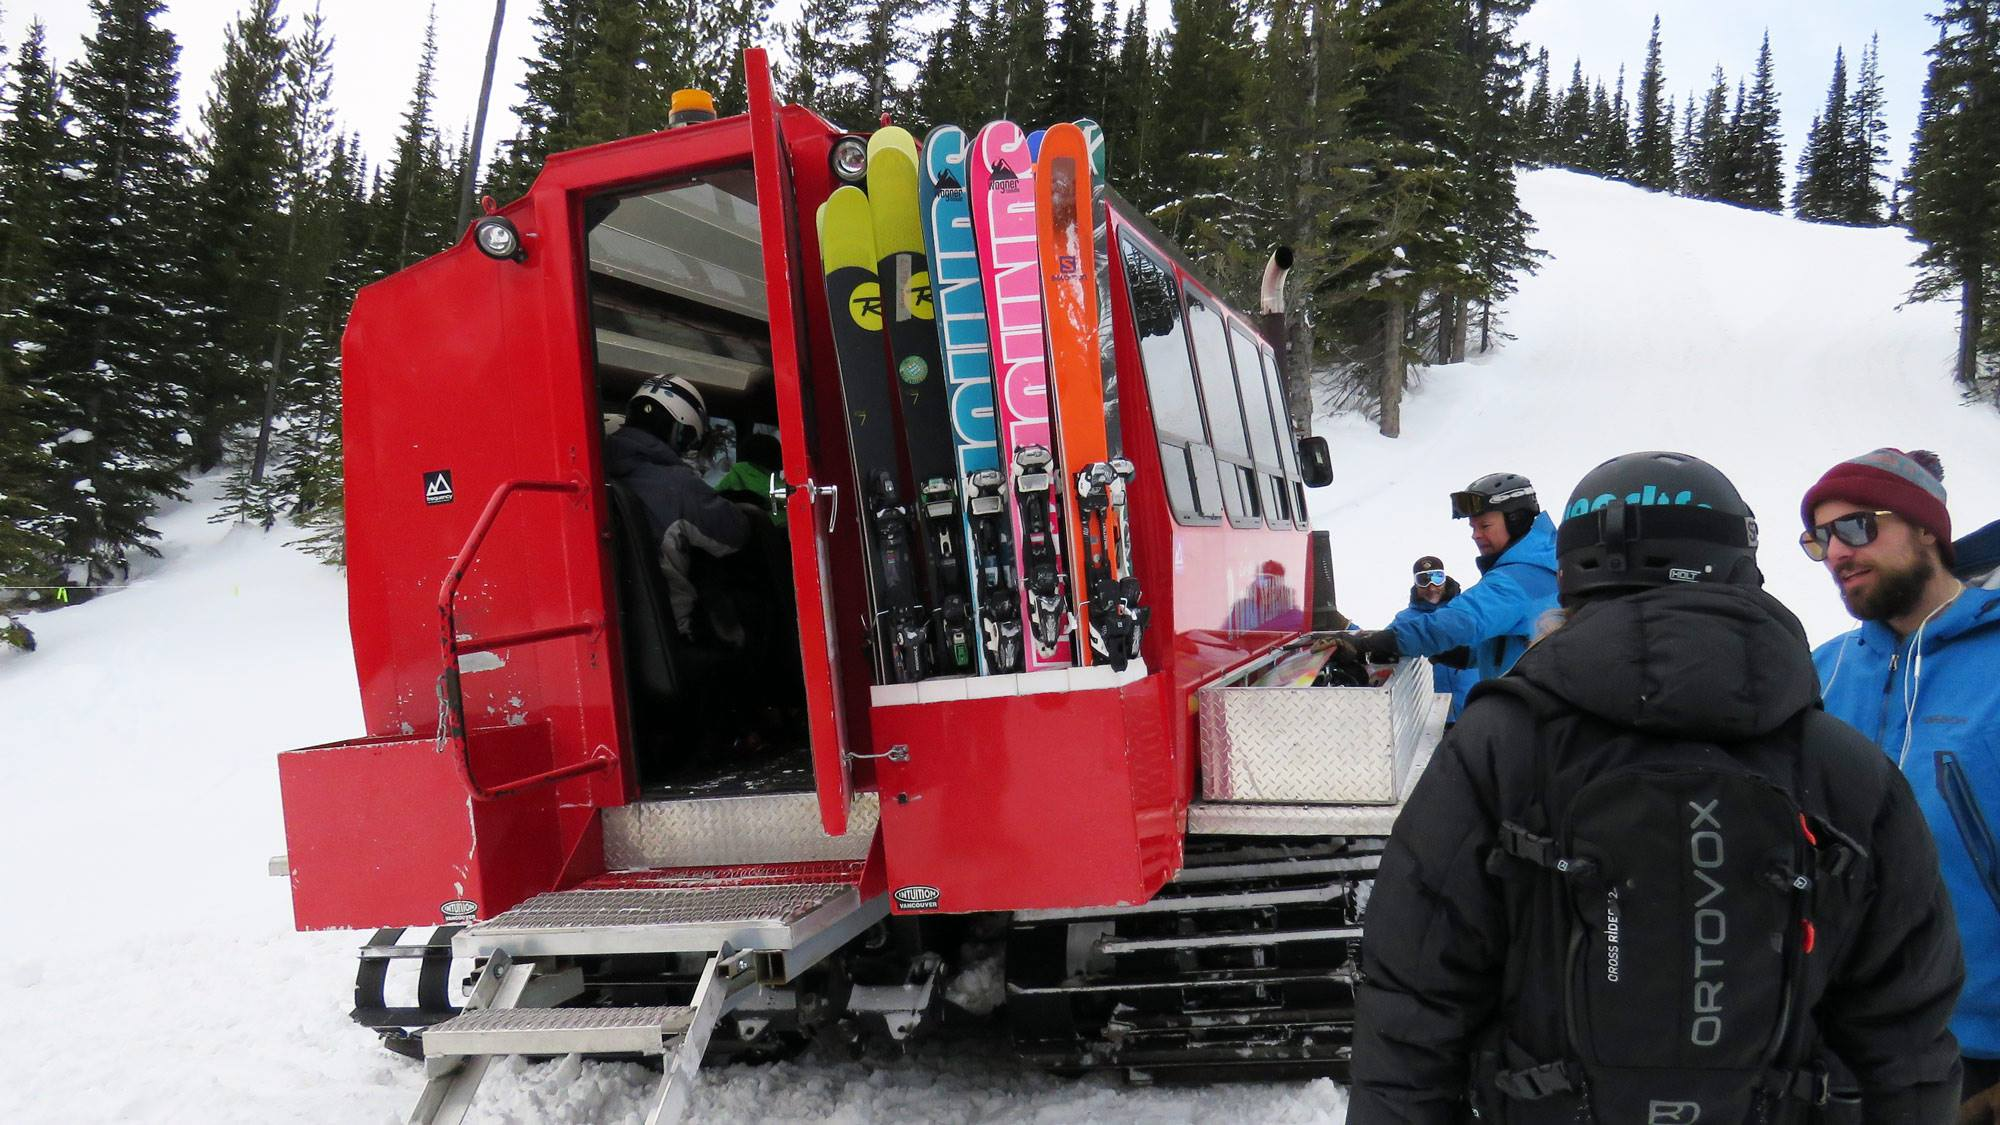 The snowcat had a great set-up